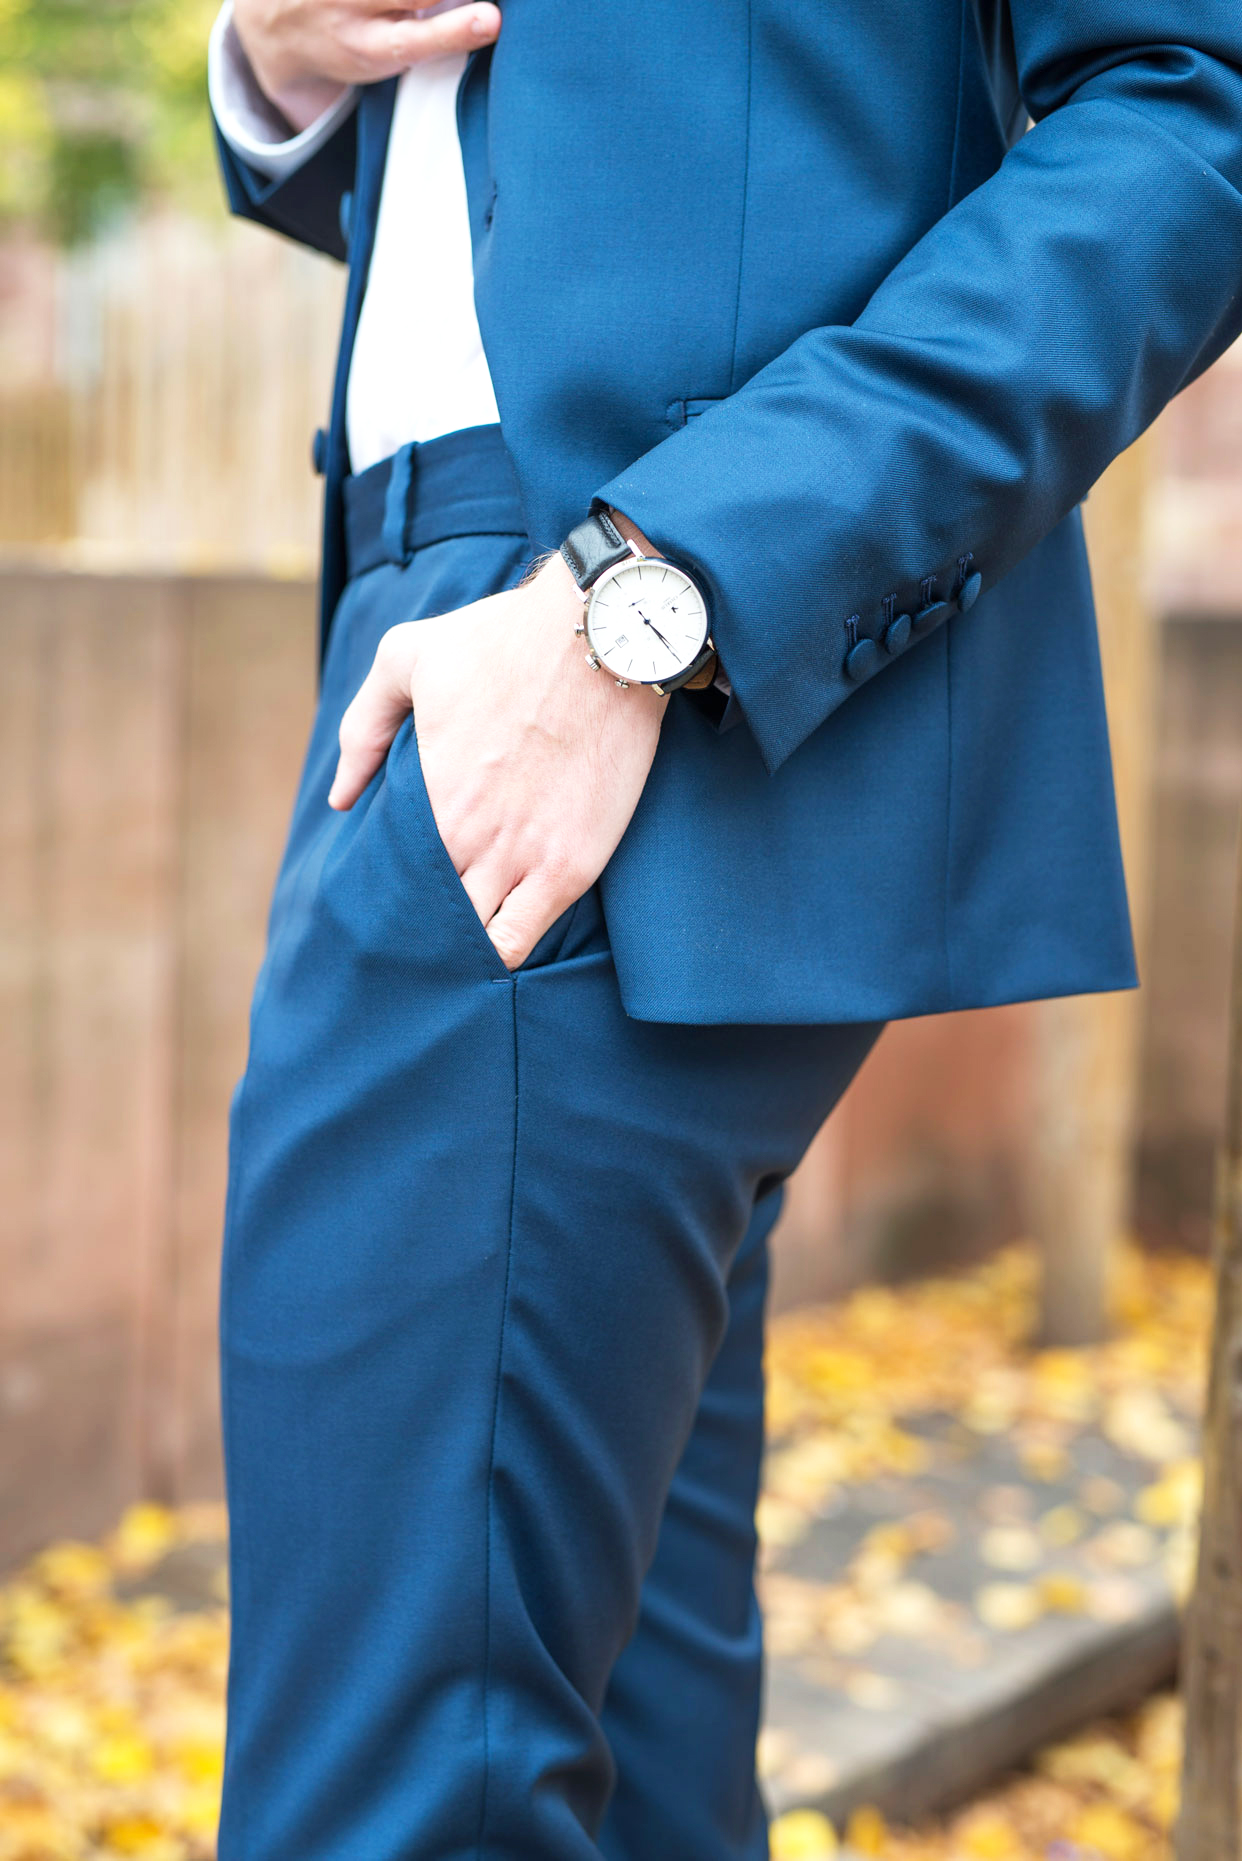 blog-mode-strasbourg-homme-lifestyle-costume-sneakers-baskets-suit-style-tendances-fashion-blogger-french-faubourg-saint-sulpice-paris-blog-11